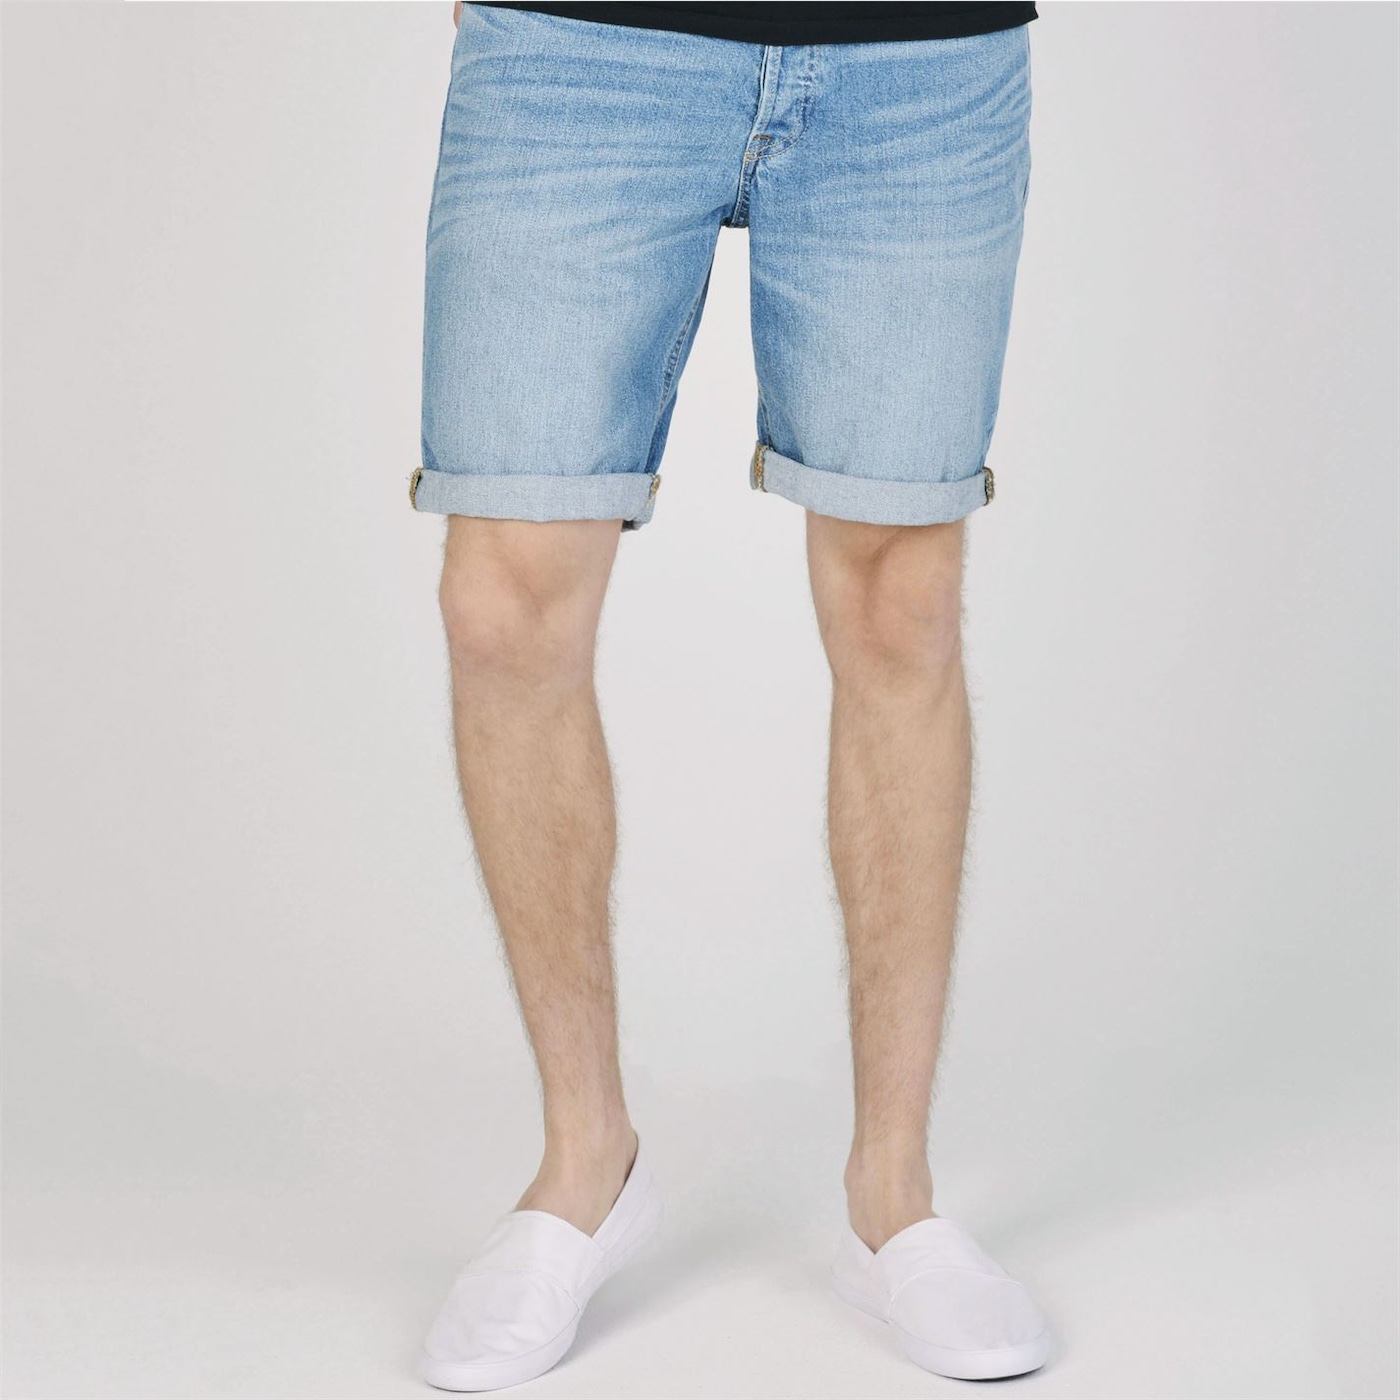 Jack and Jones Jean Intelligence Denim Mens Shorts